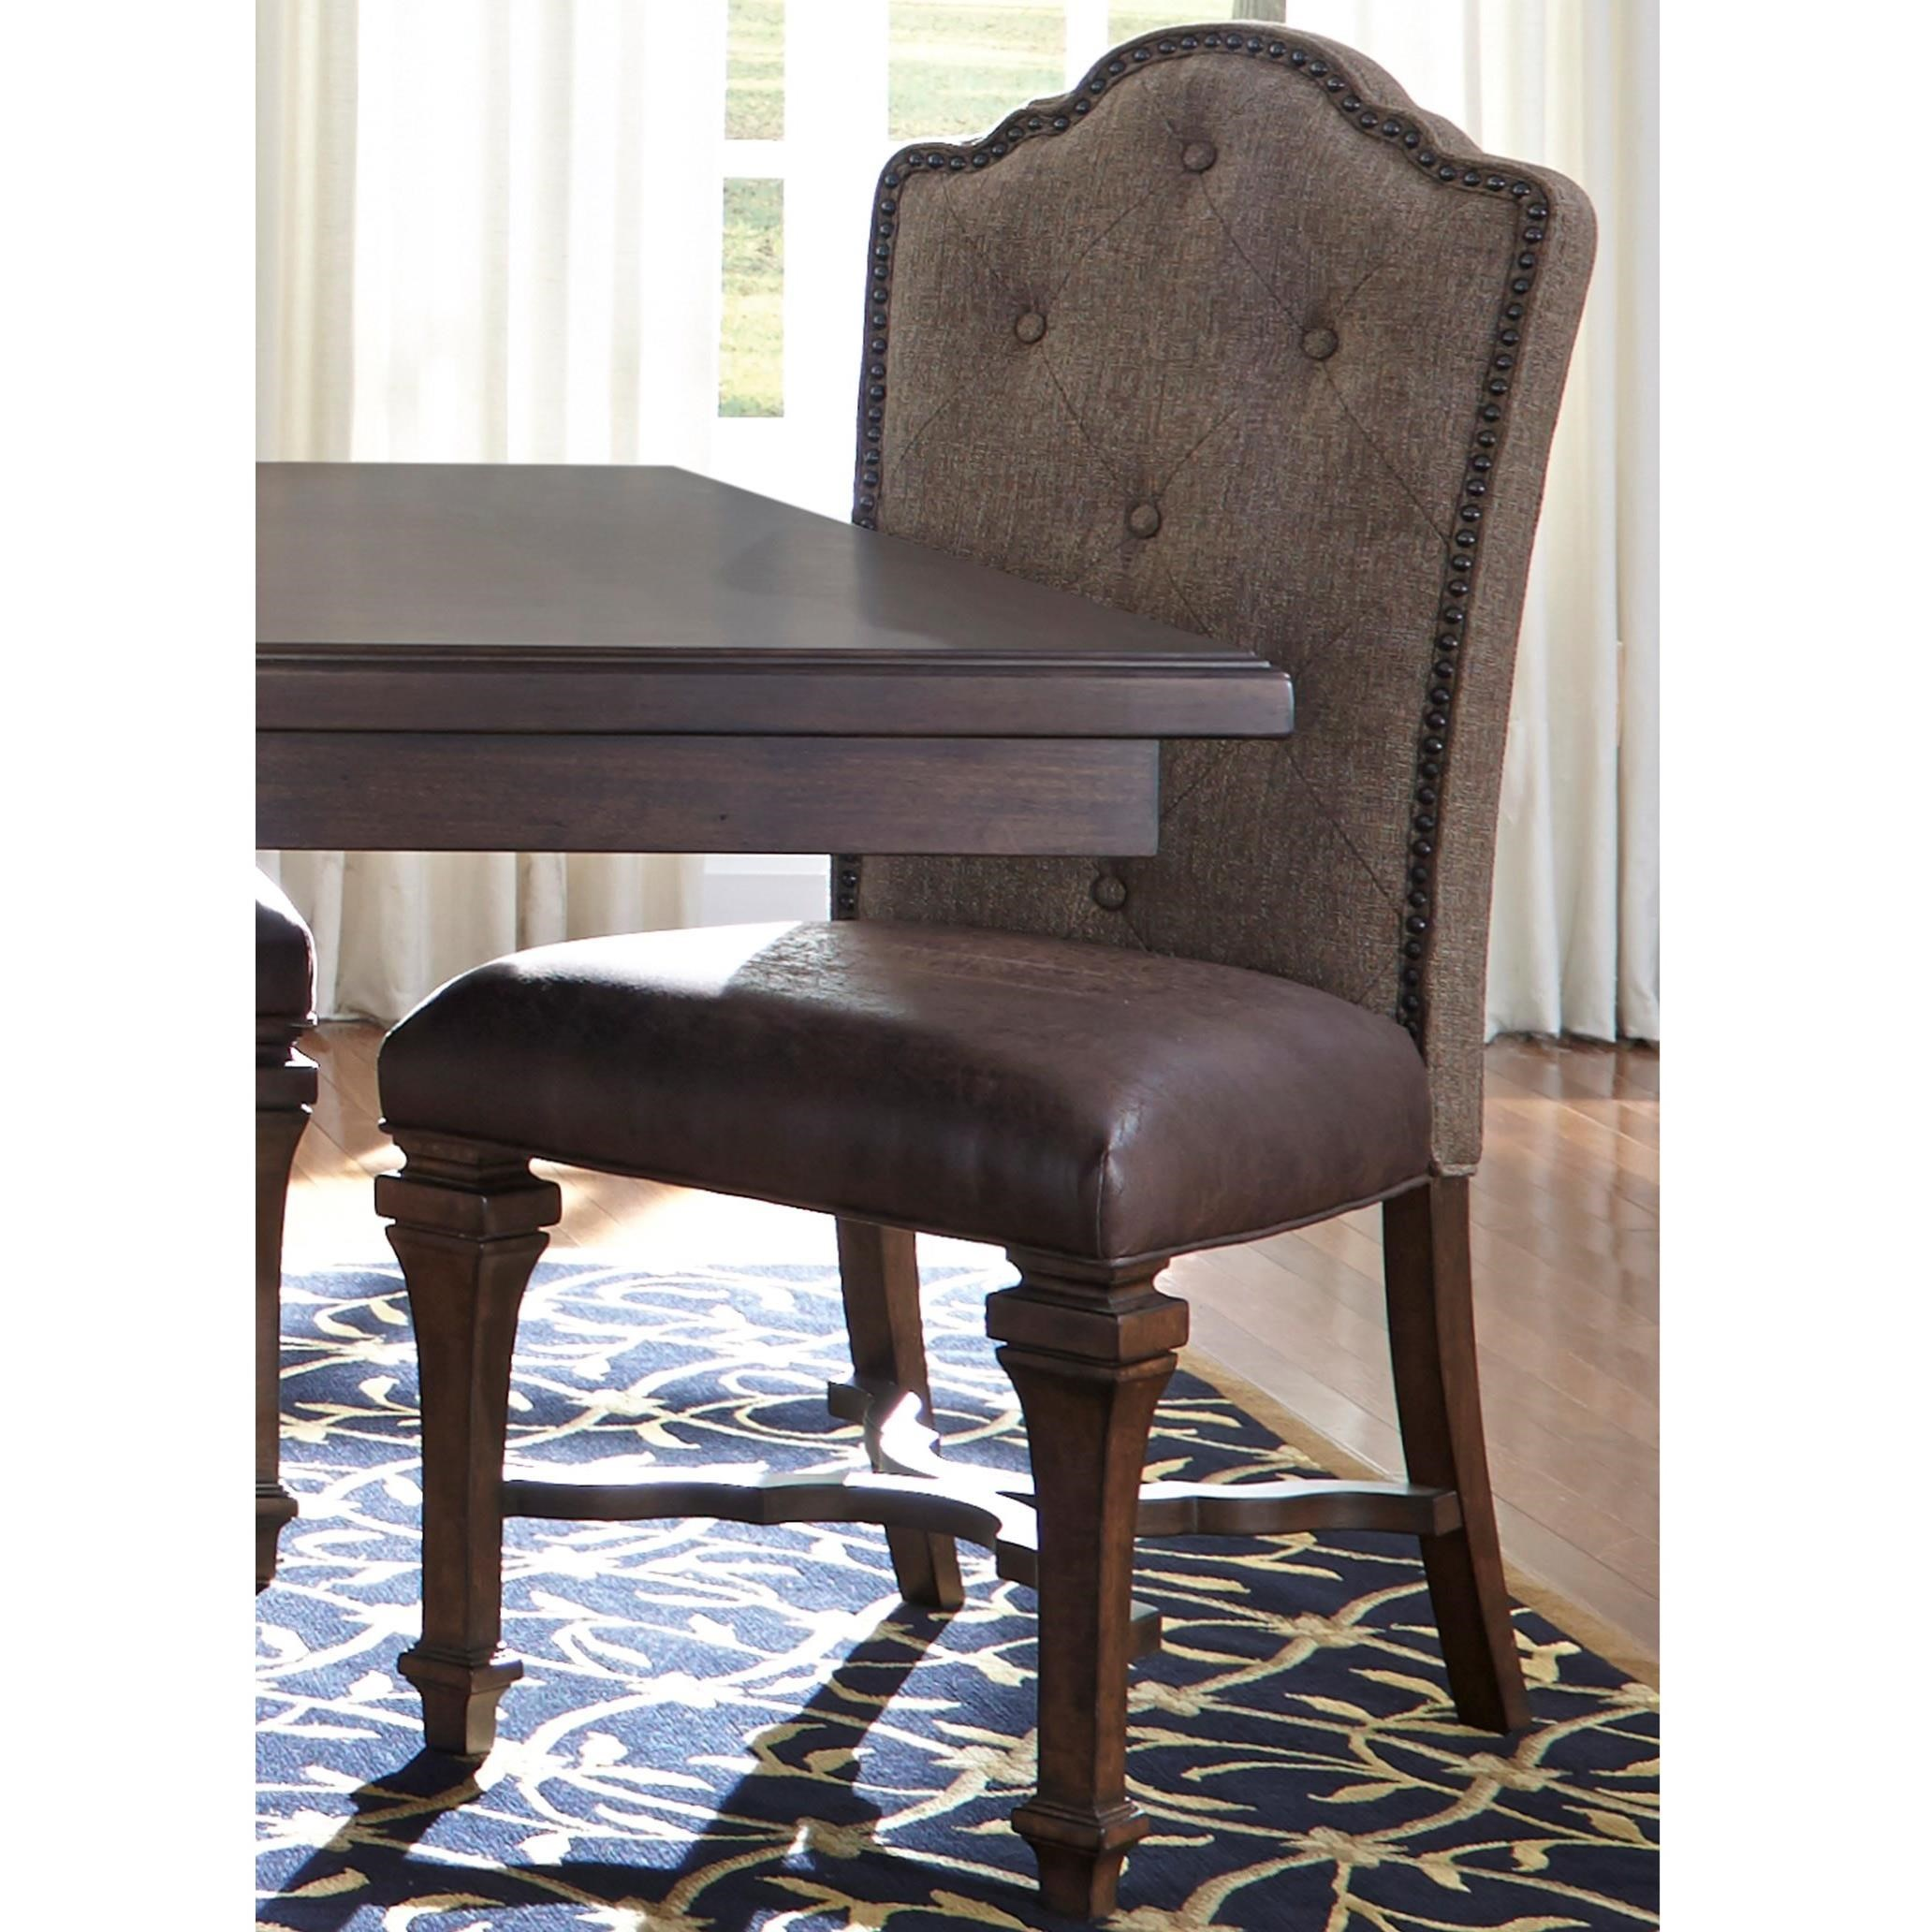 Lucca Upholstered Side Chair by Libby at Walker's Furniture